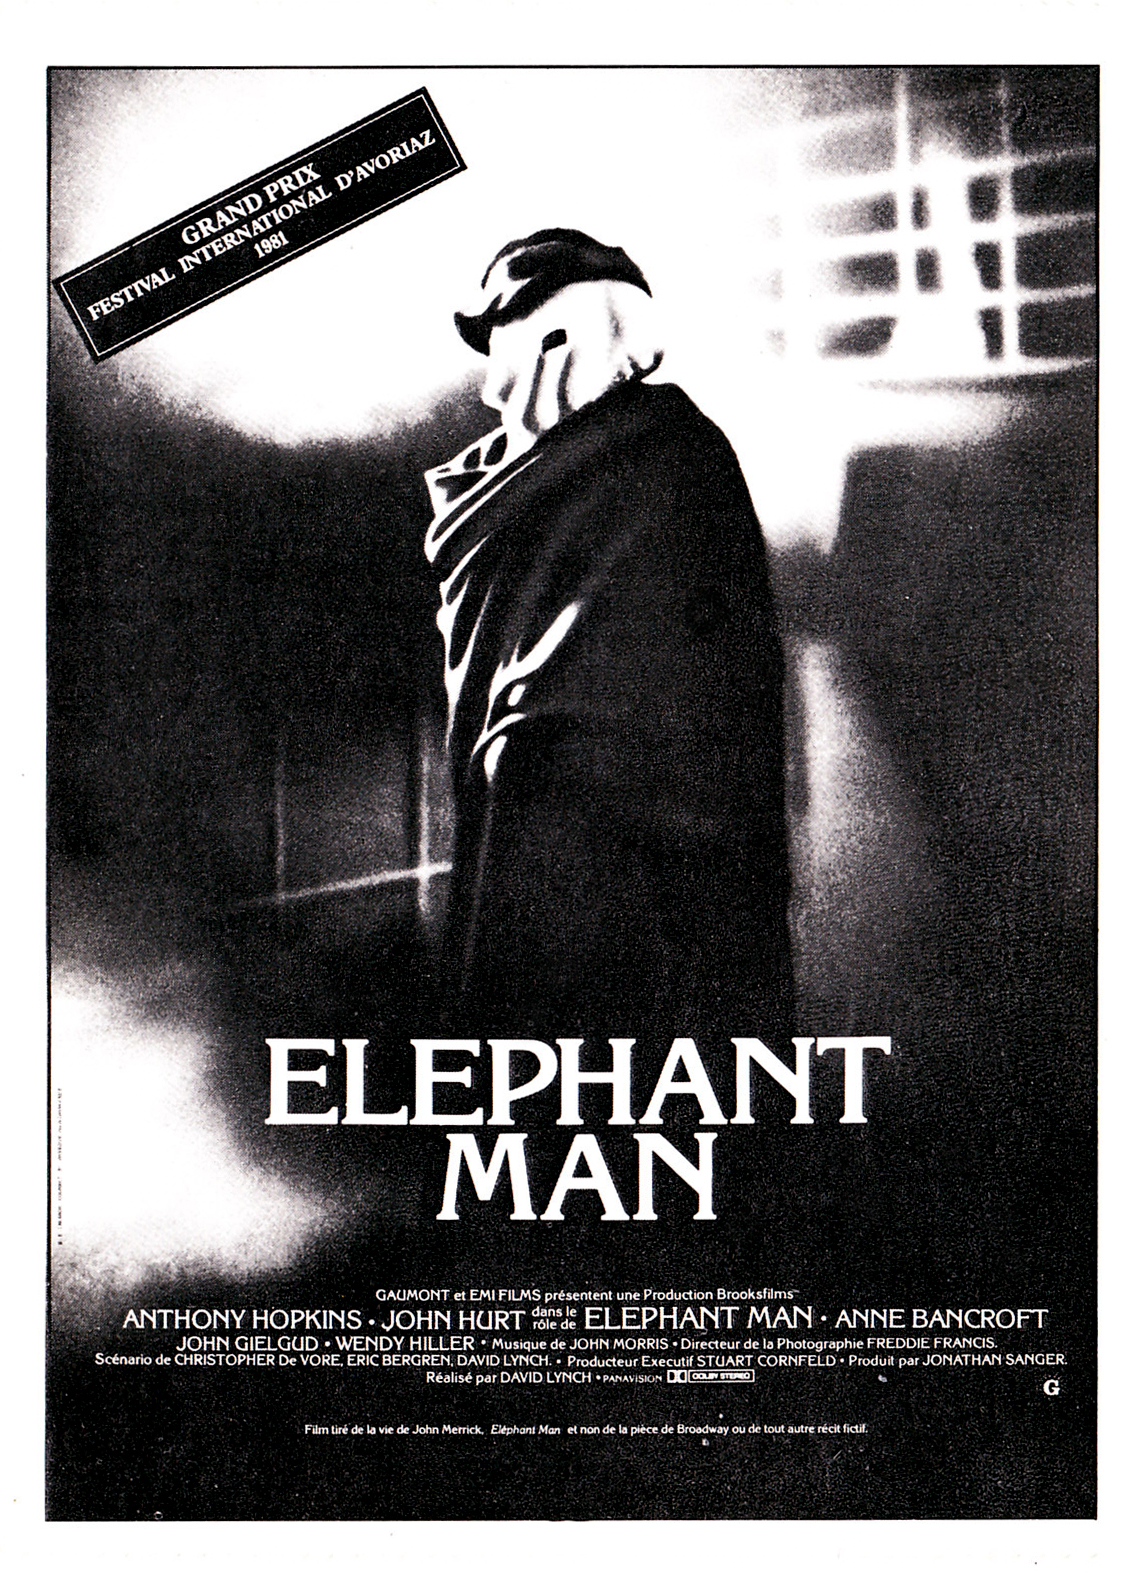 Elephant Man de David Lynch